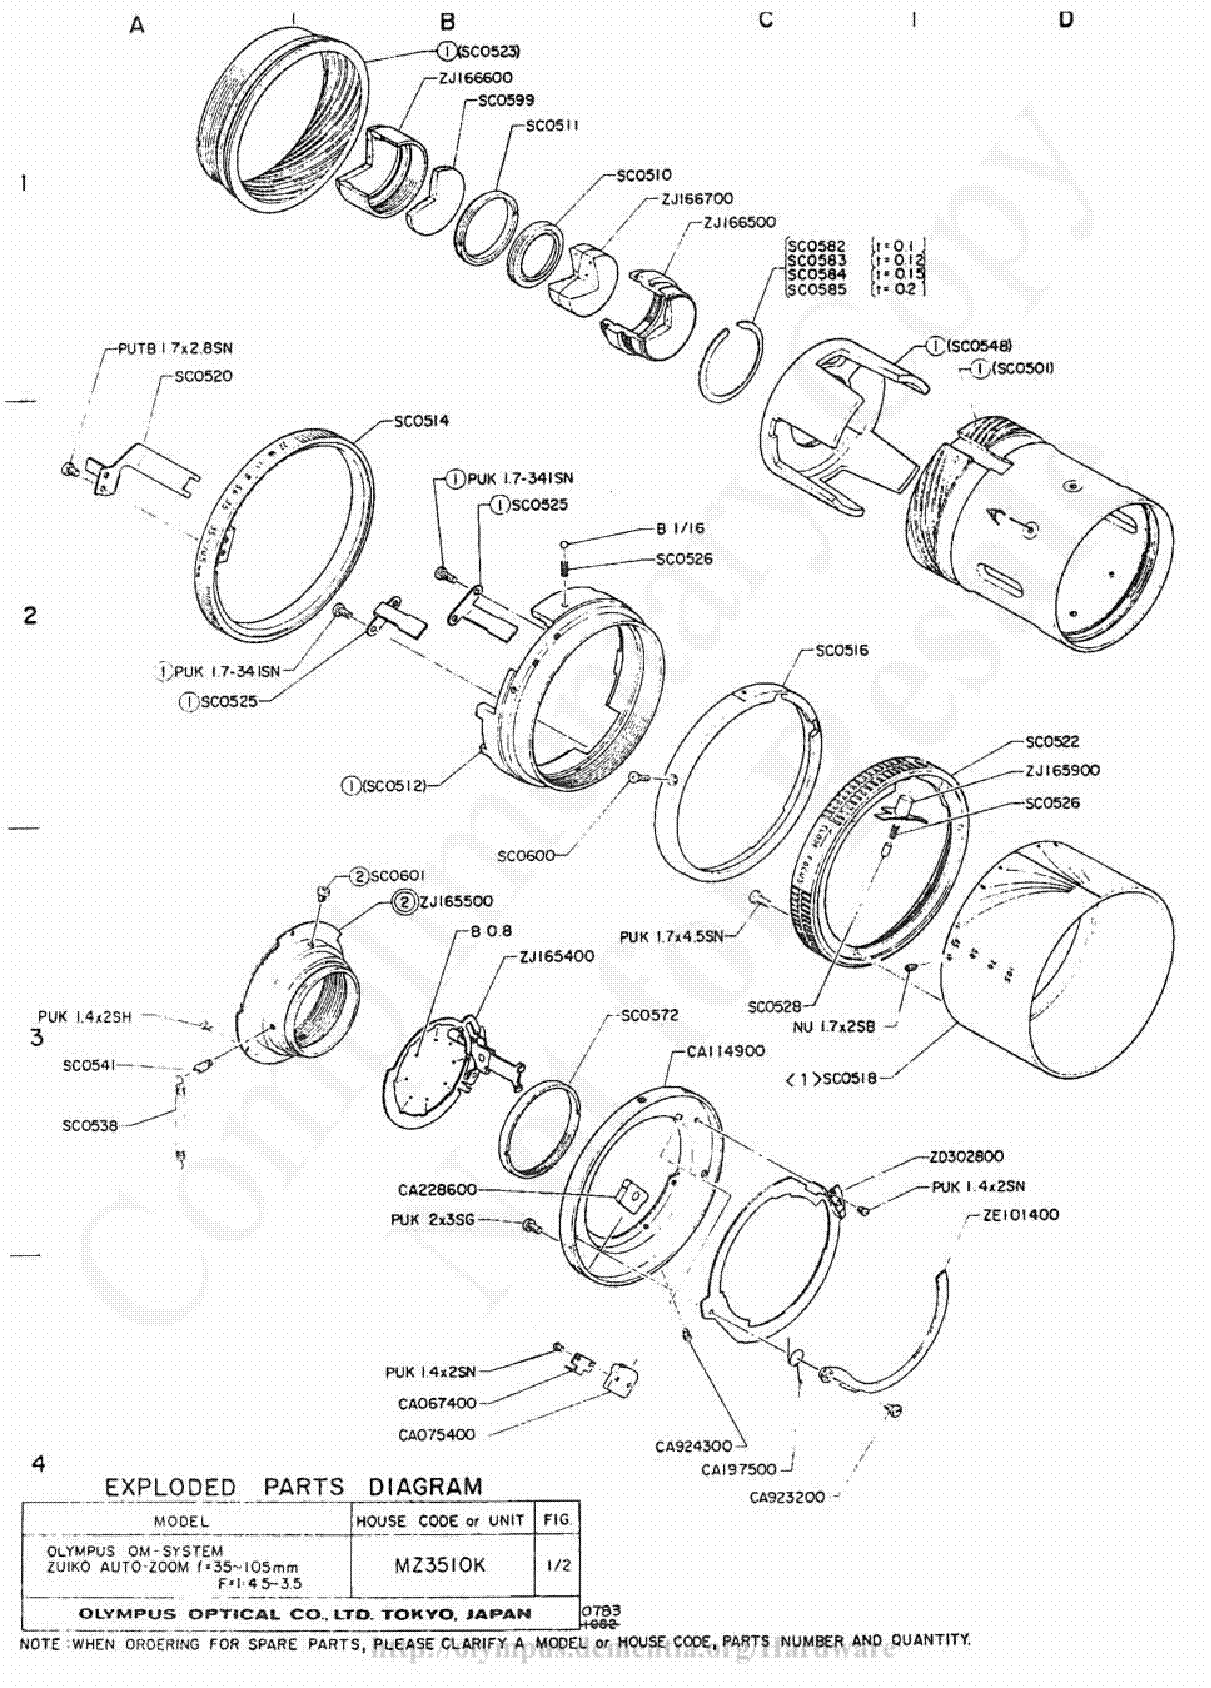 olympus 18mm f3 5 exploded parts diagram service manual download  schematics  eeprom  repair